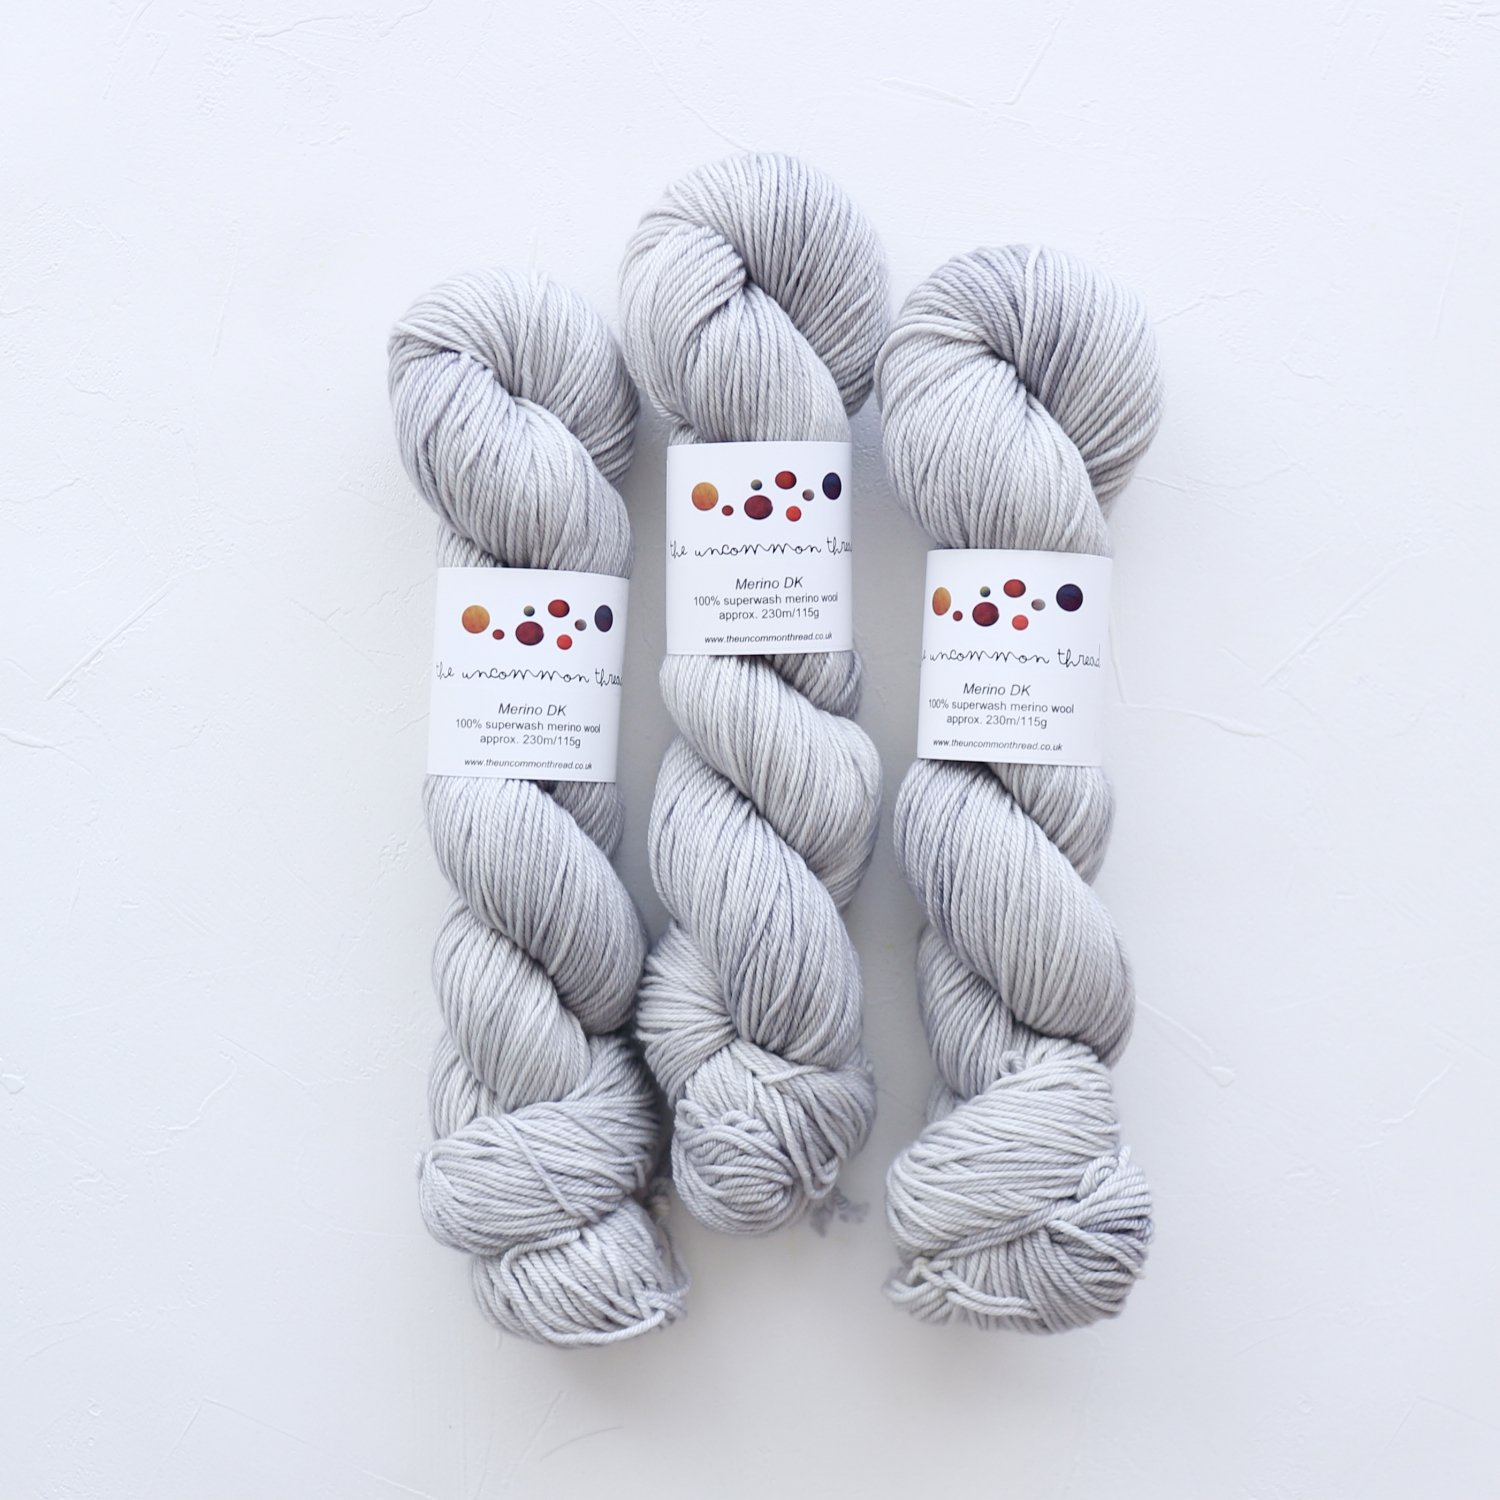 【The Uncommon Thread】<br>Merino DK<br>Breath